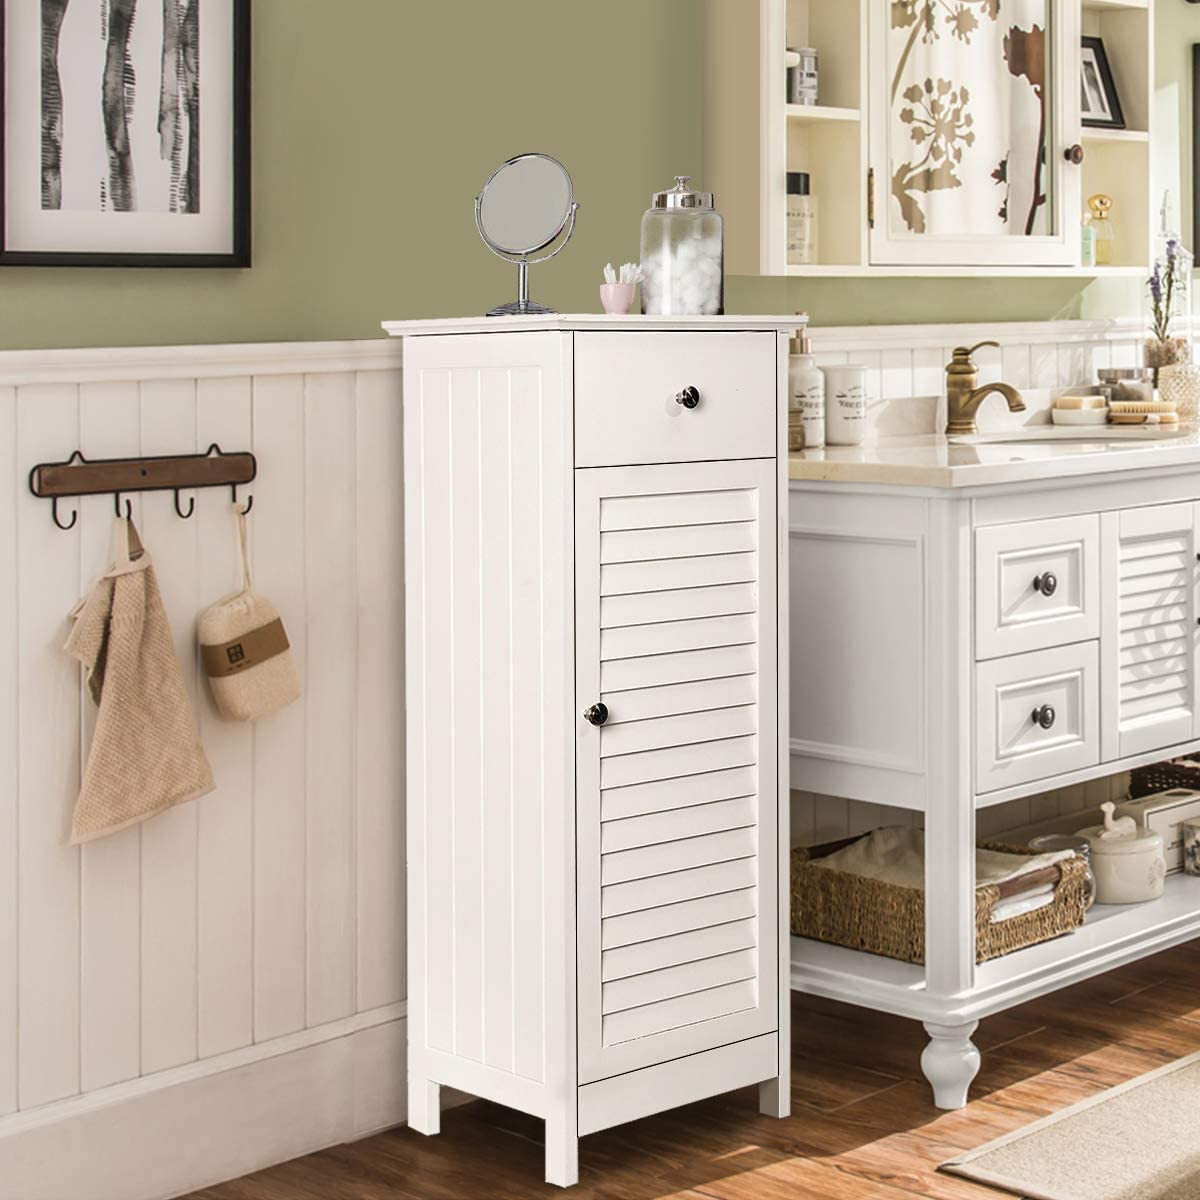 KINGSO Bathroom Floor Storage Cabinet Standing Cabinet with Drawer and Single Shutter Door for Home Office,12.6x11.8x34.3inch-White